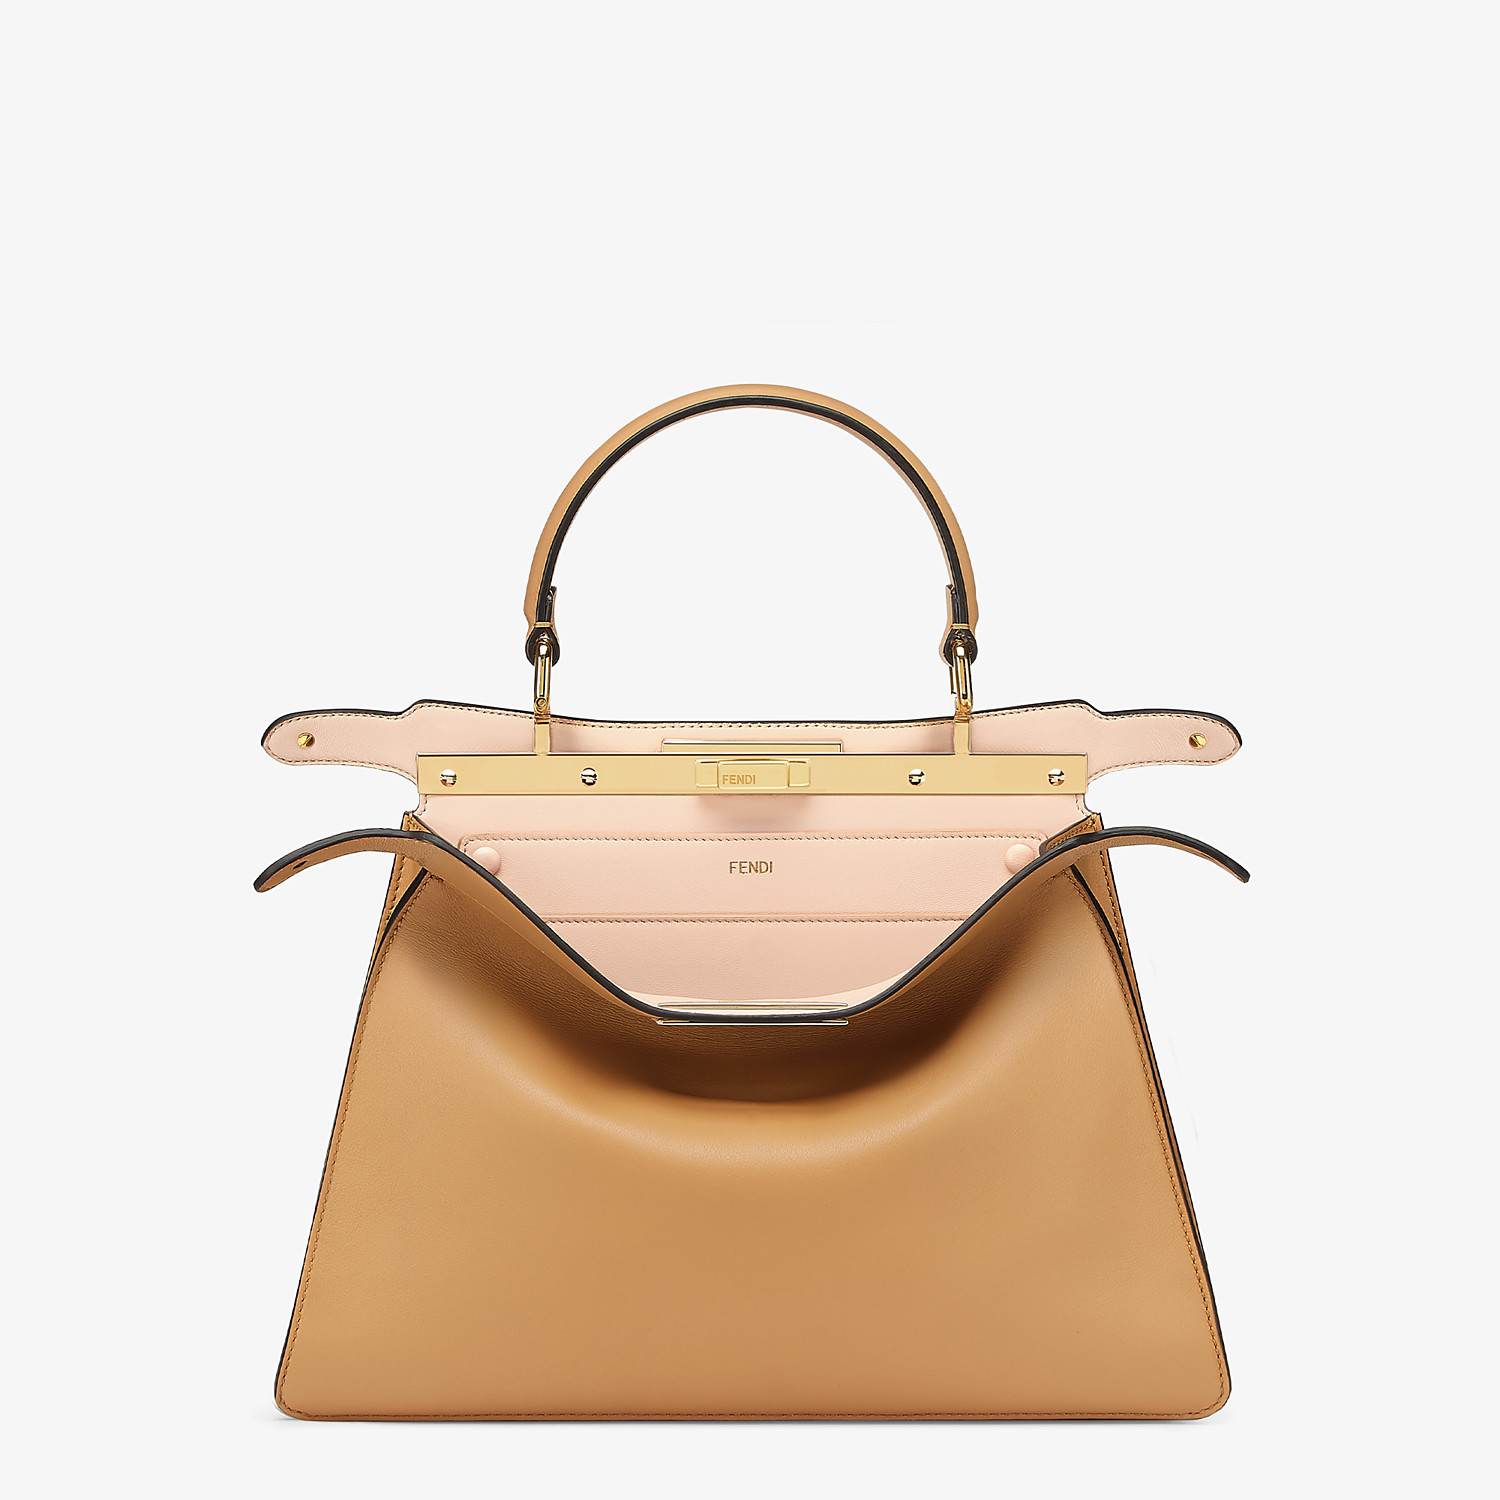 FENDI PEEKABOO ISEEU MEDIUM - Beige leather bag - view 3 detail